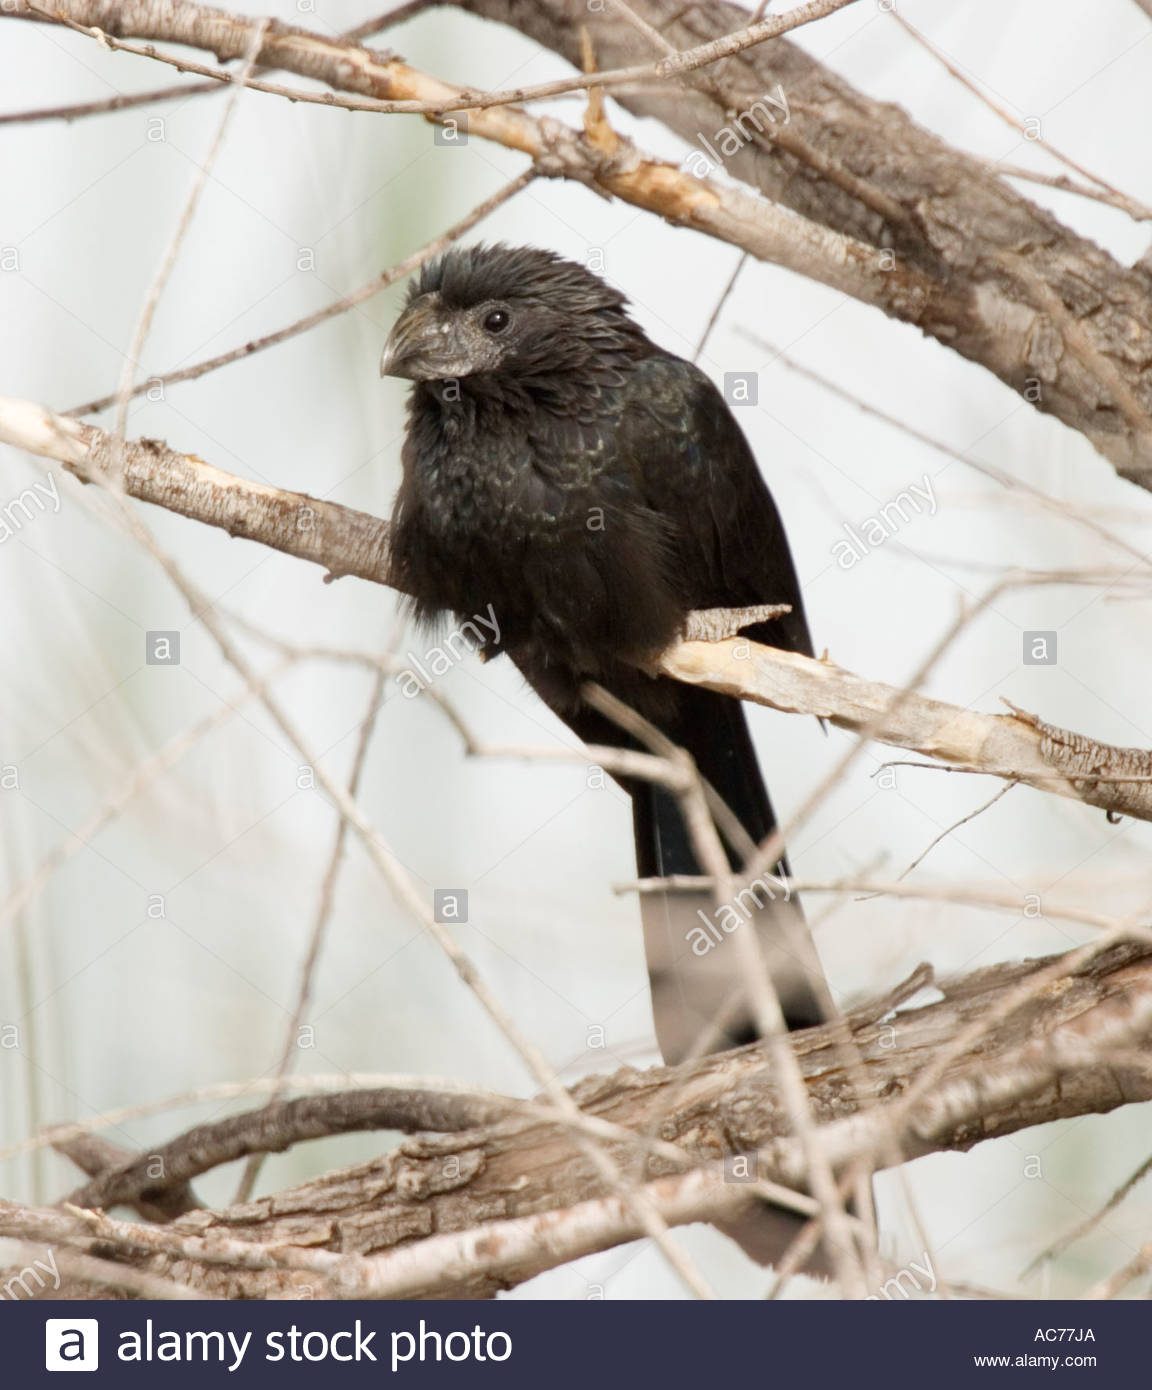 Groove-billed Ani, perched, Crotophaga sulcirostris - Stock Image